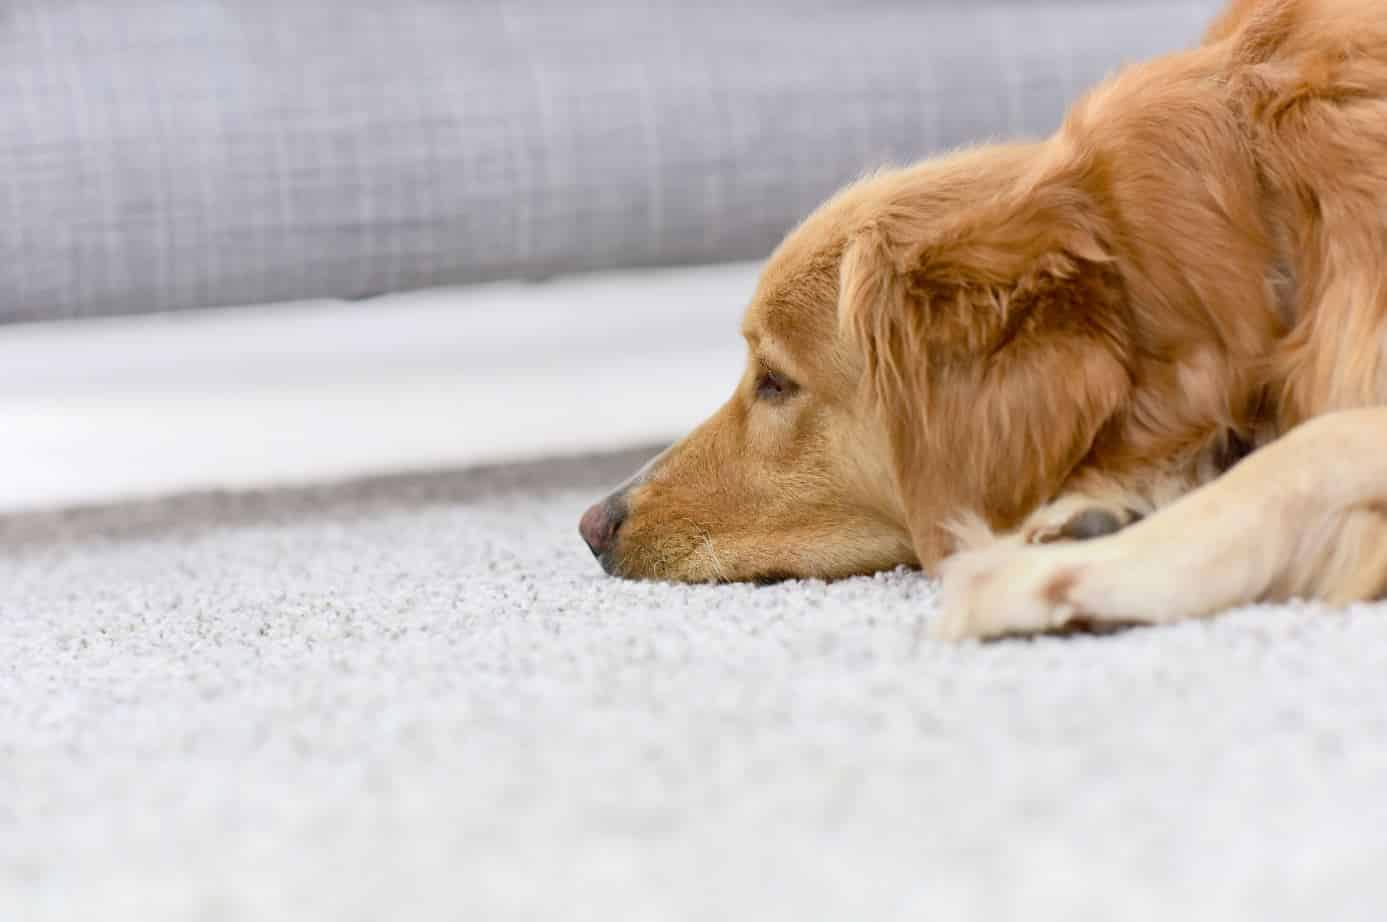 labrador with its muzzle on a white carpet